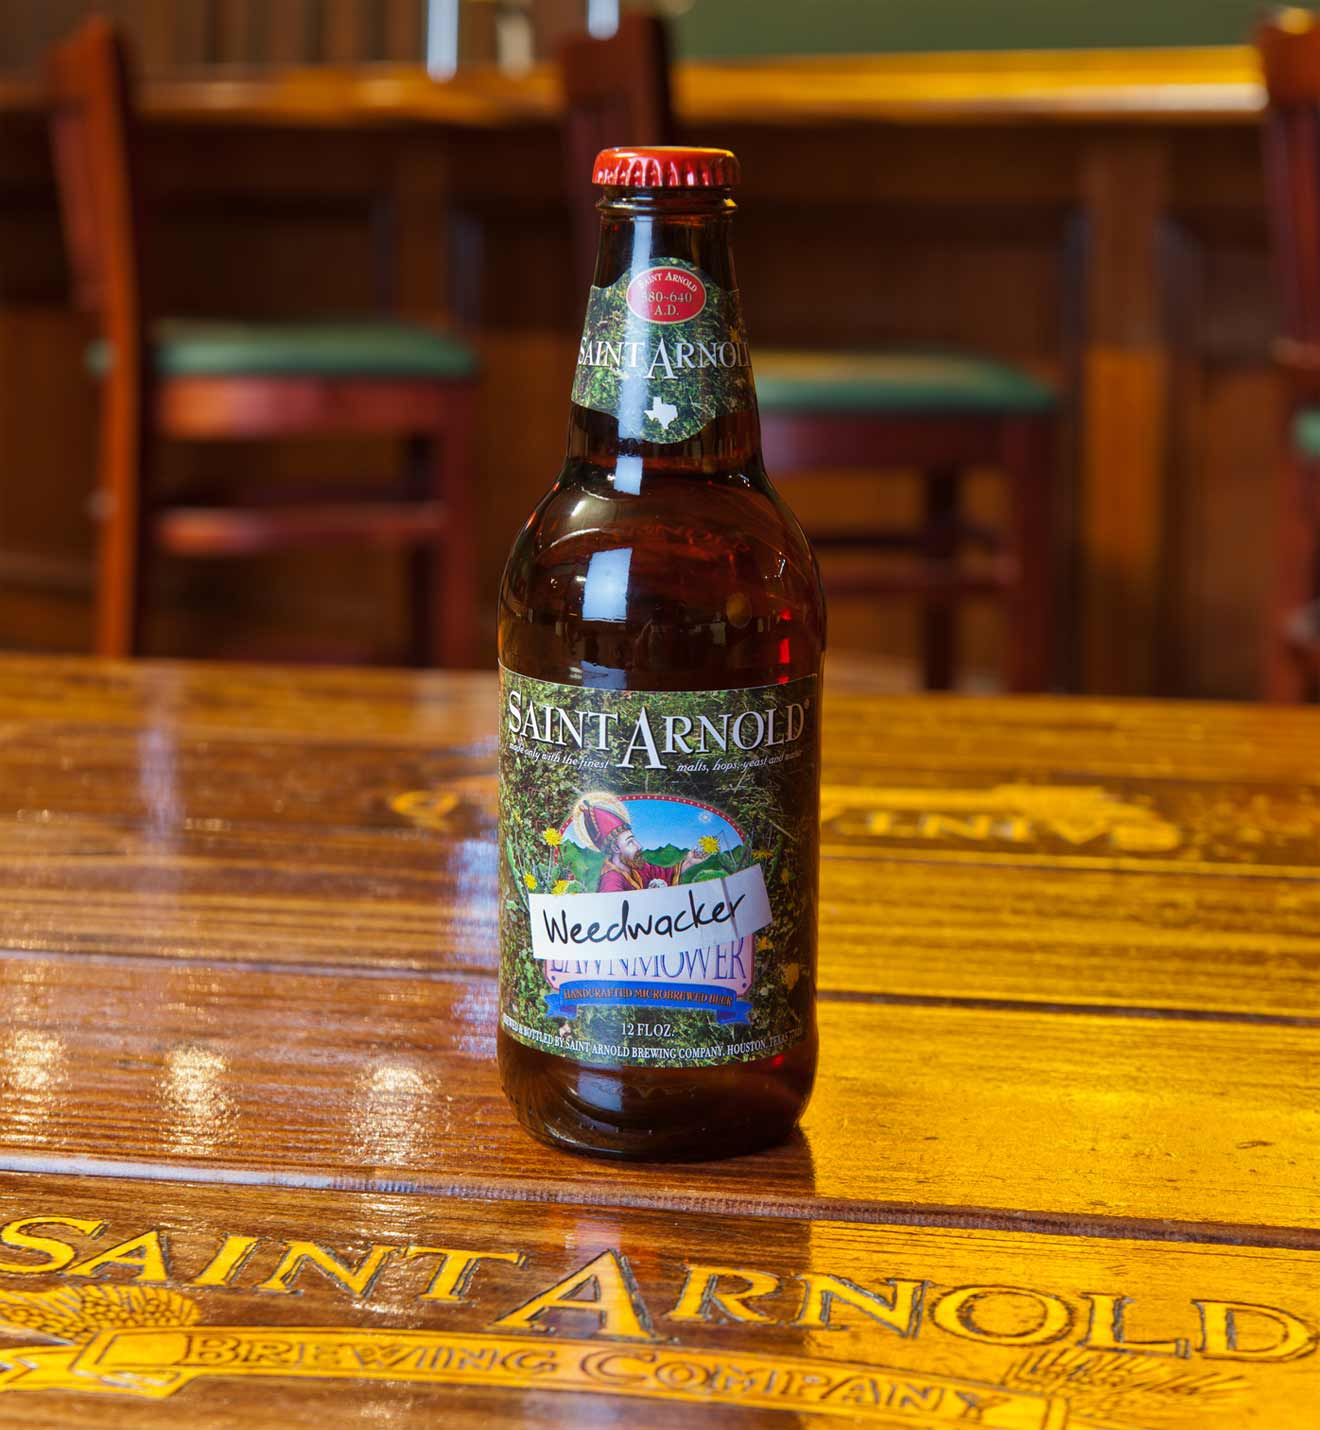 Saint Arnold Weedwacker Bottle